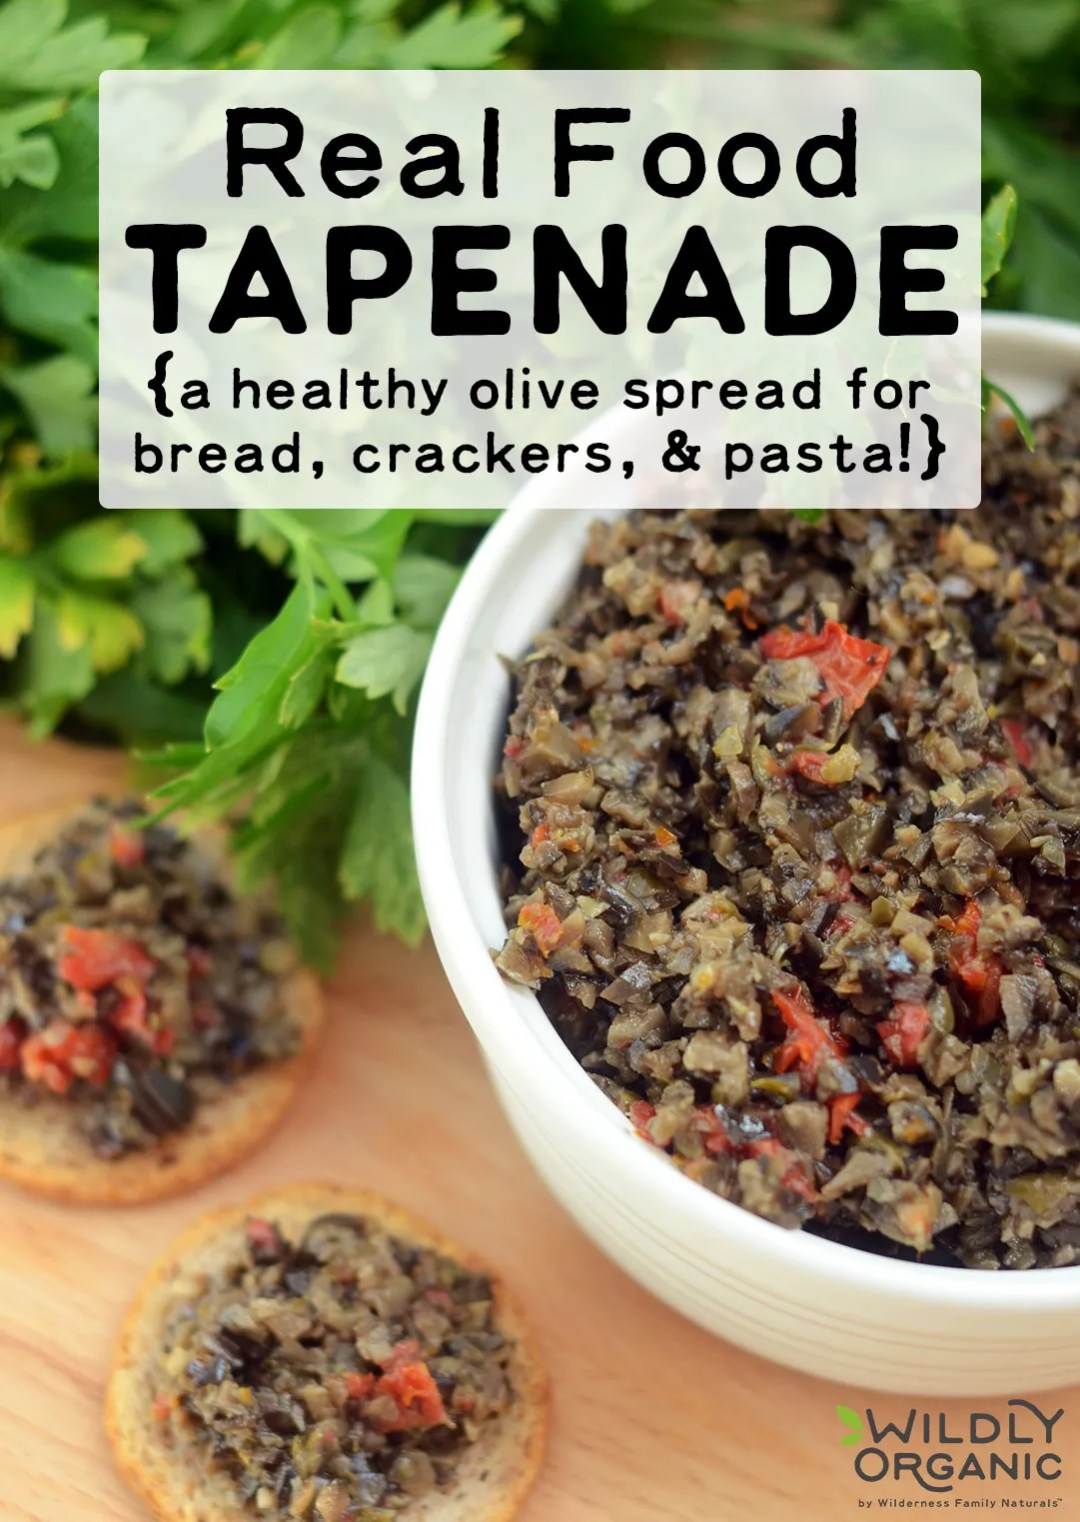 Real Food Tapenade   Hailing from the south of France (Provençe, to be precise), tapenade is a healthy olive spread made with olives, capers, and olive oil. Bursting with flavor, Real Food Tapenade is delicious served over crostini, focaccia, or crackers.   WildlyOrganic.com